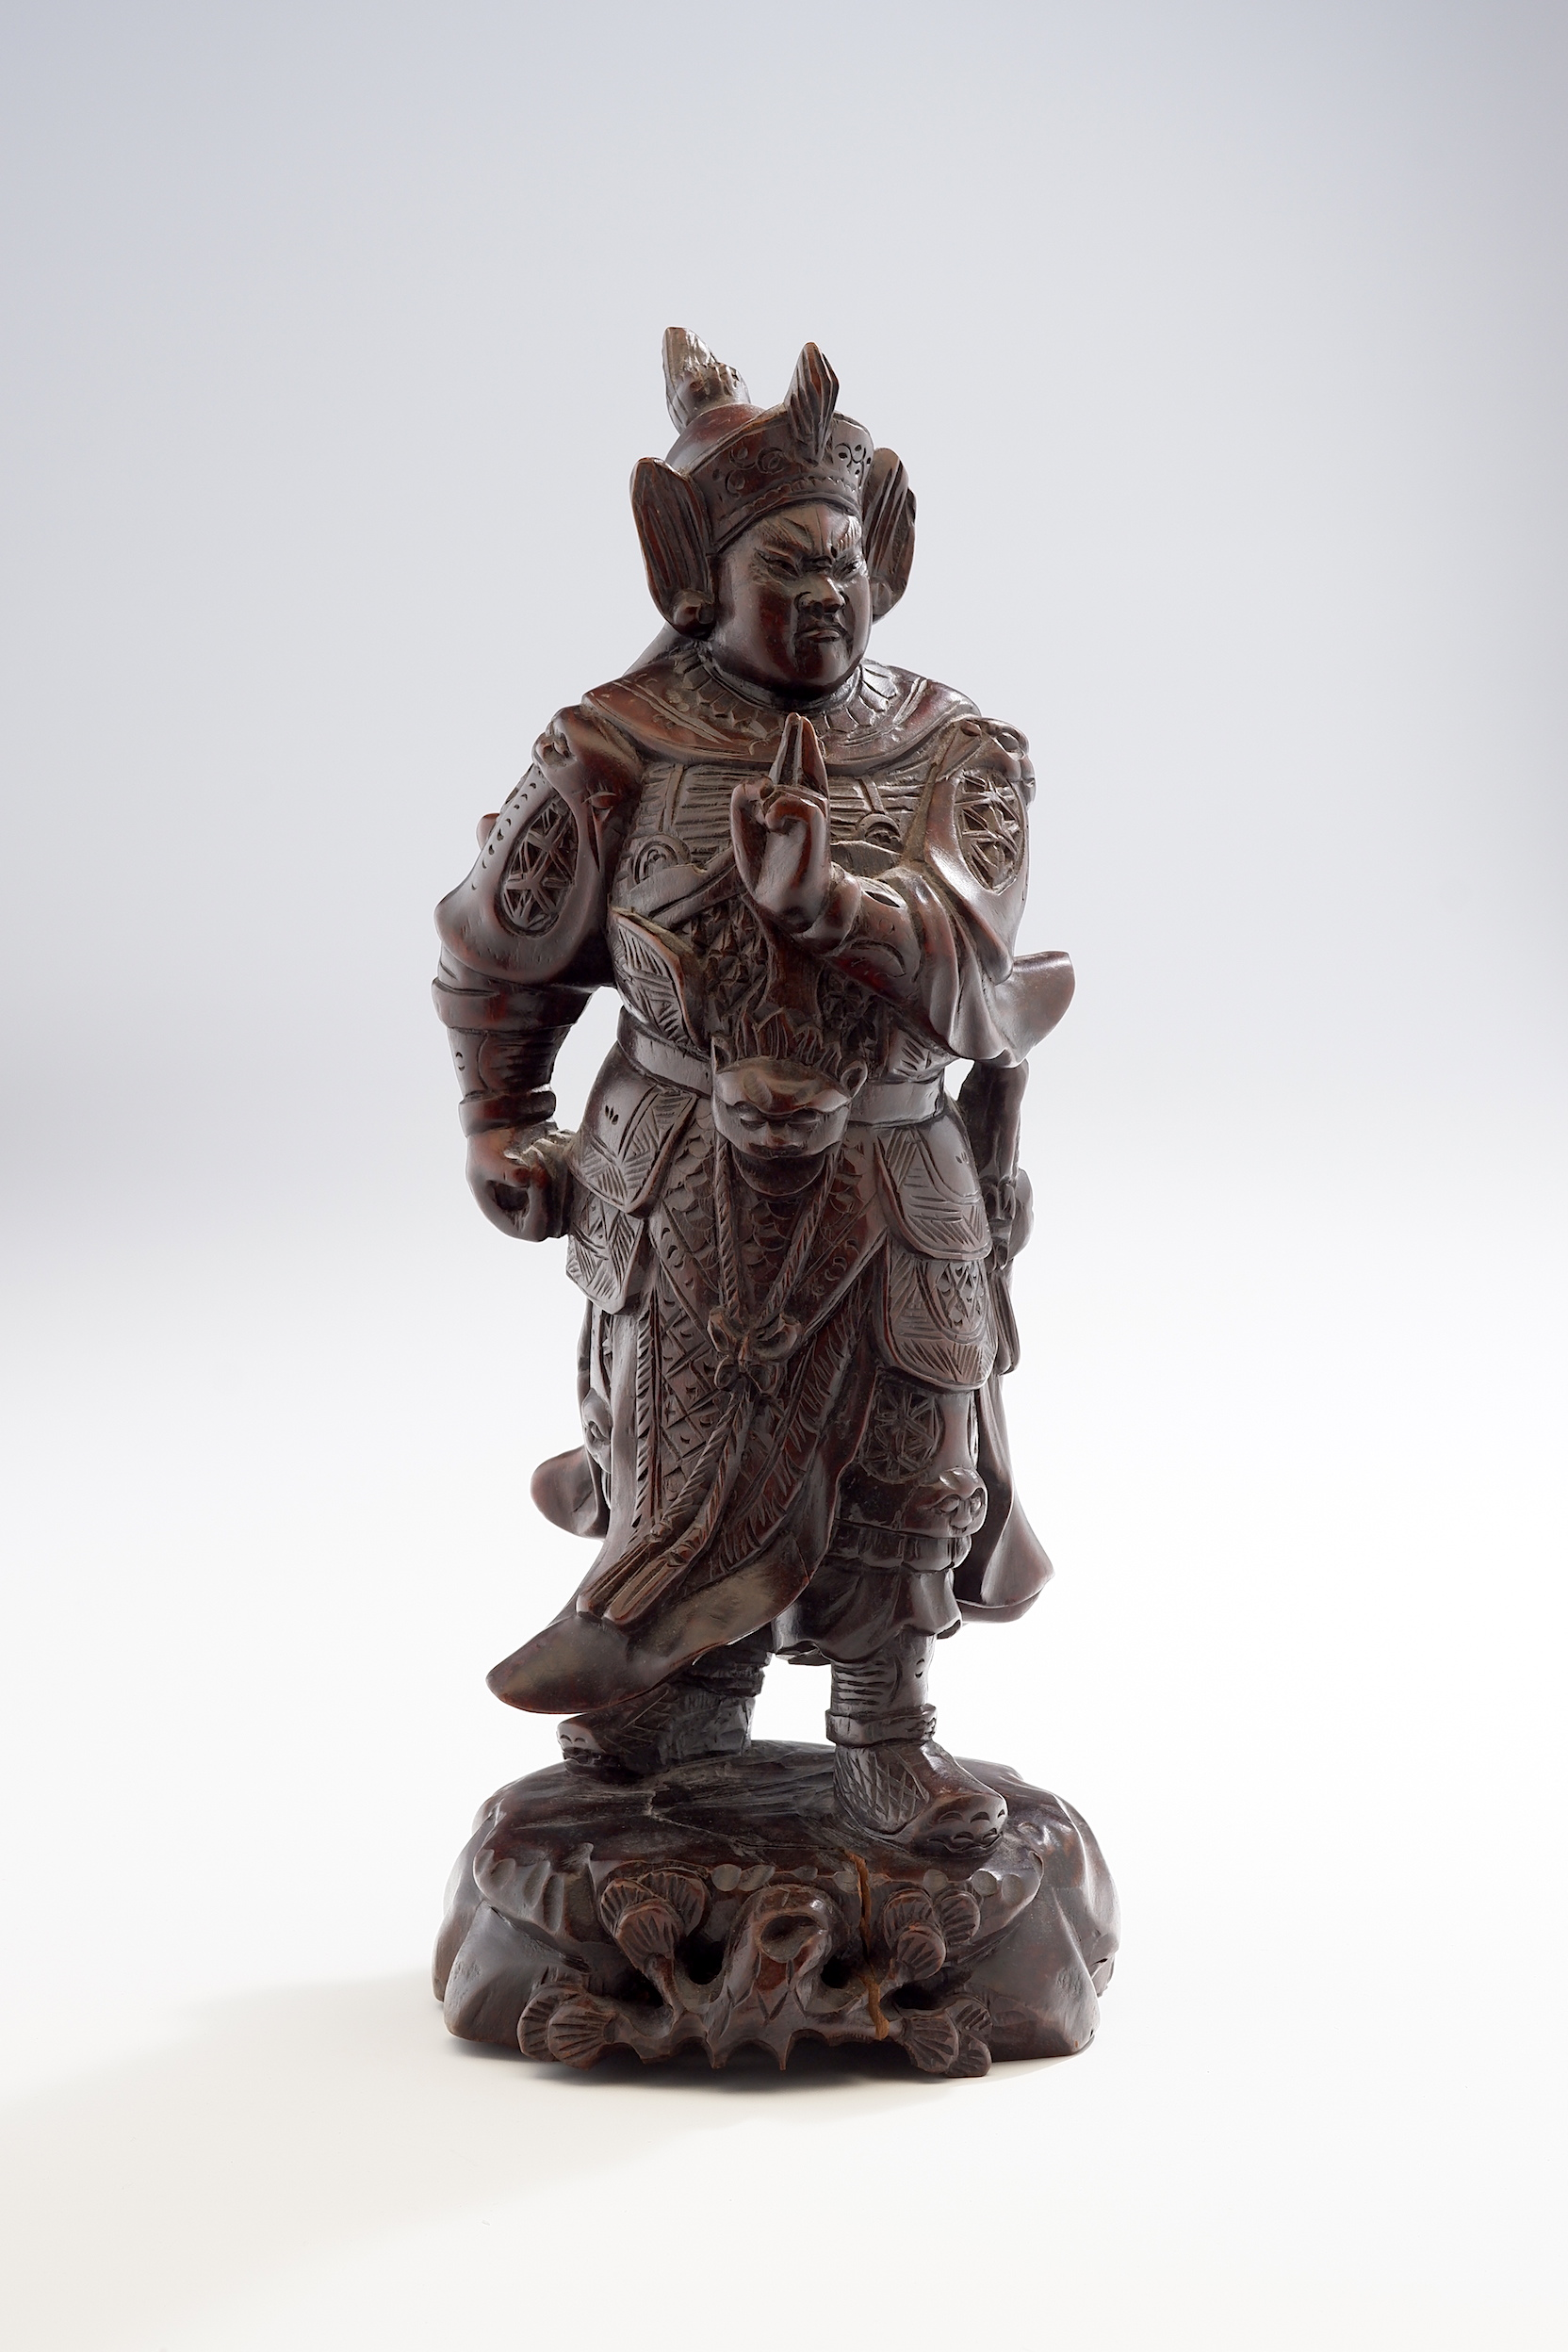 'Chinese Carved Hardwood Figure of a Warrior'